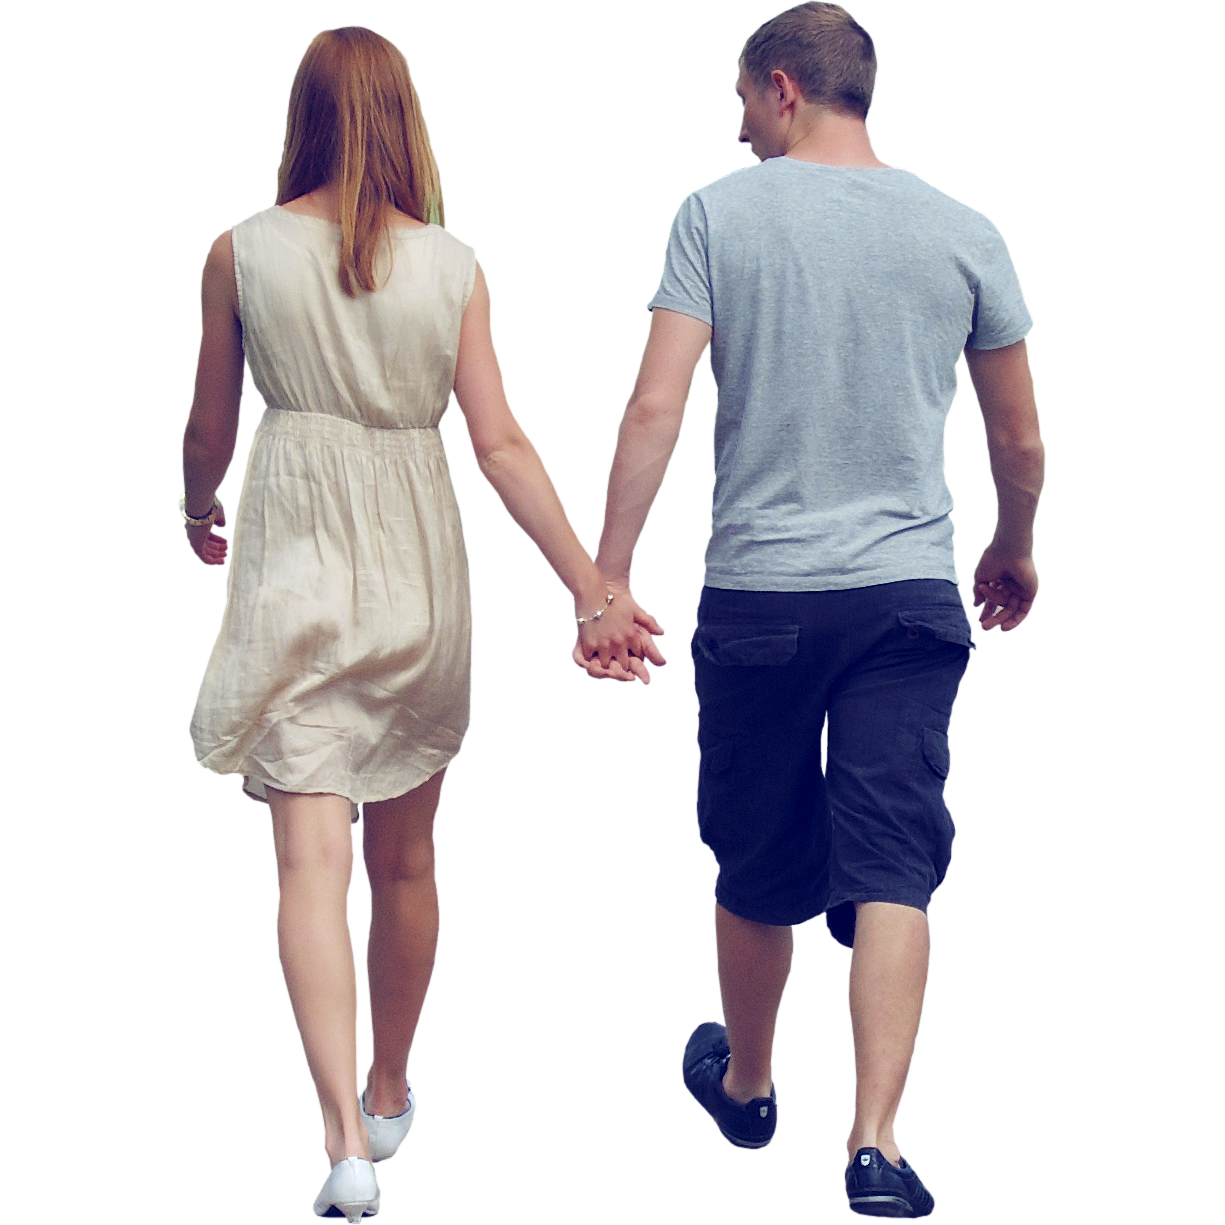 People Couple Png image #44594